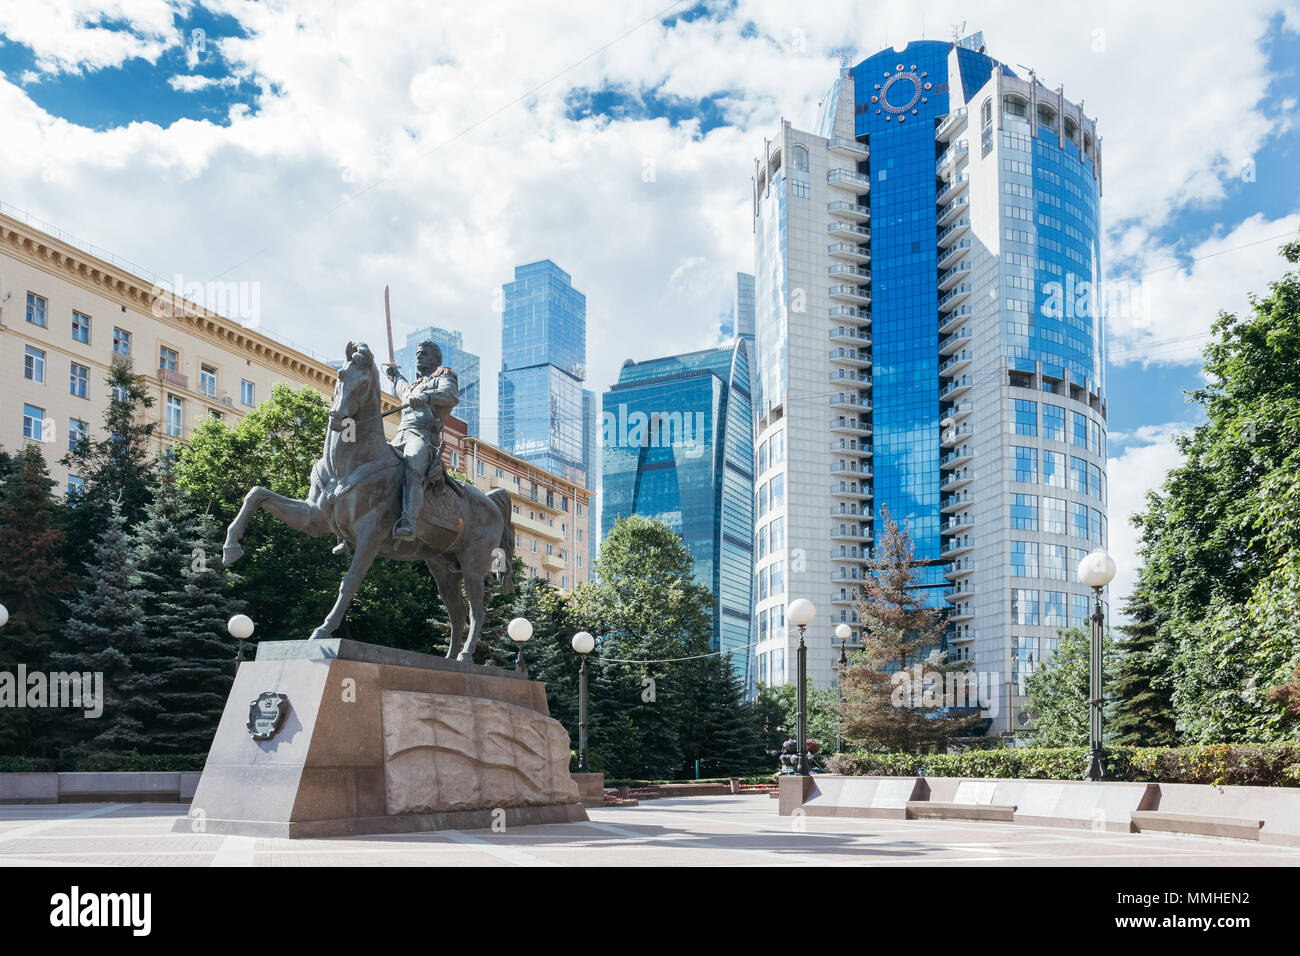 Moscow, Russia - June 24, 2017: Monument to the commander Bagration in Moscow against the background of modern skyscrapers Moscow City - Stock Image